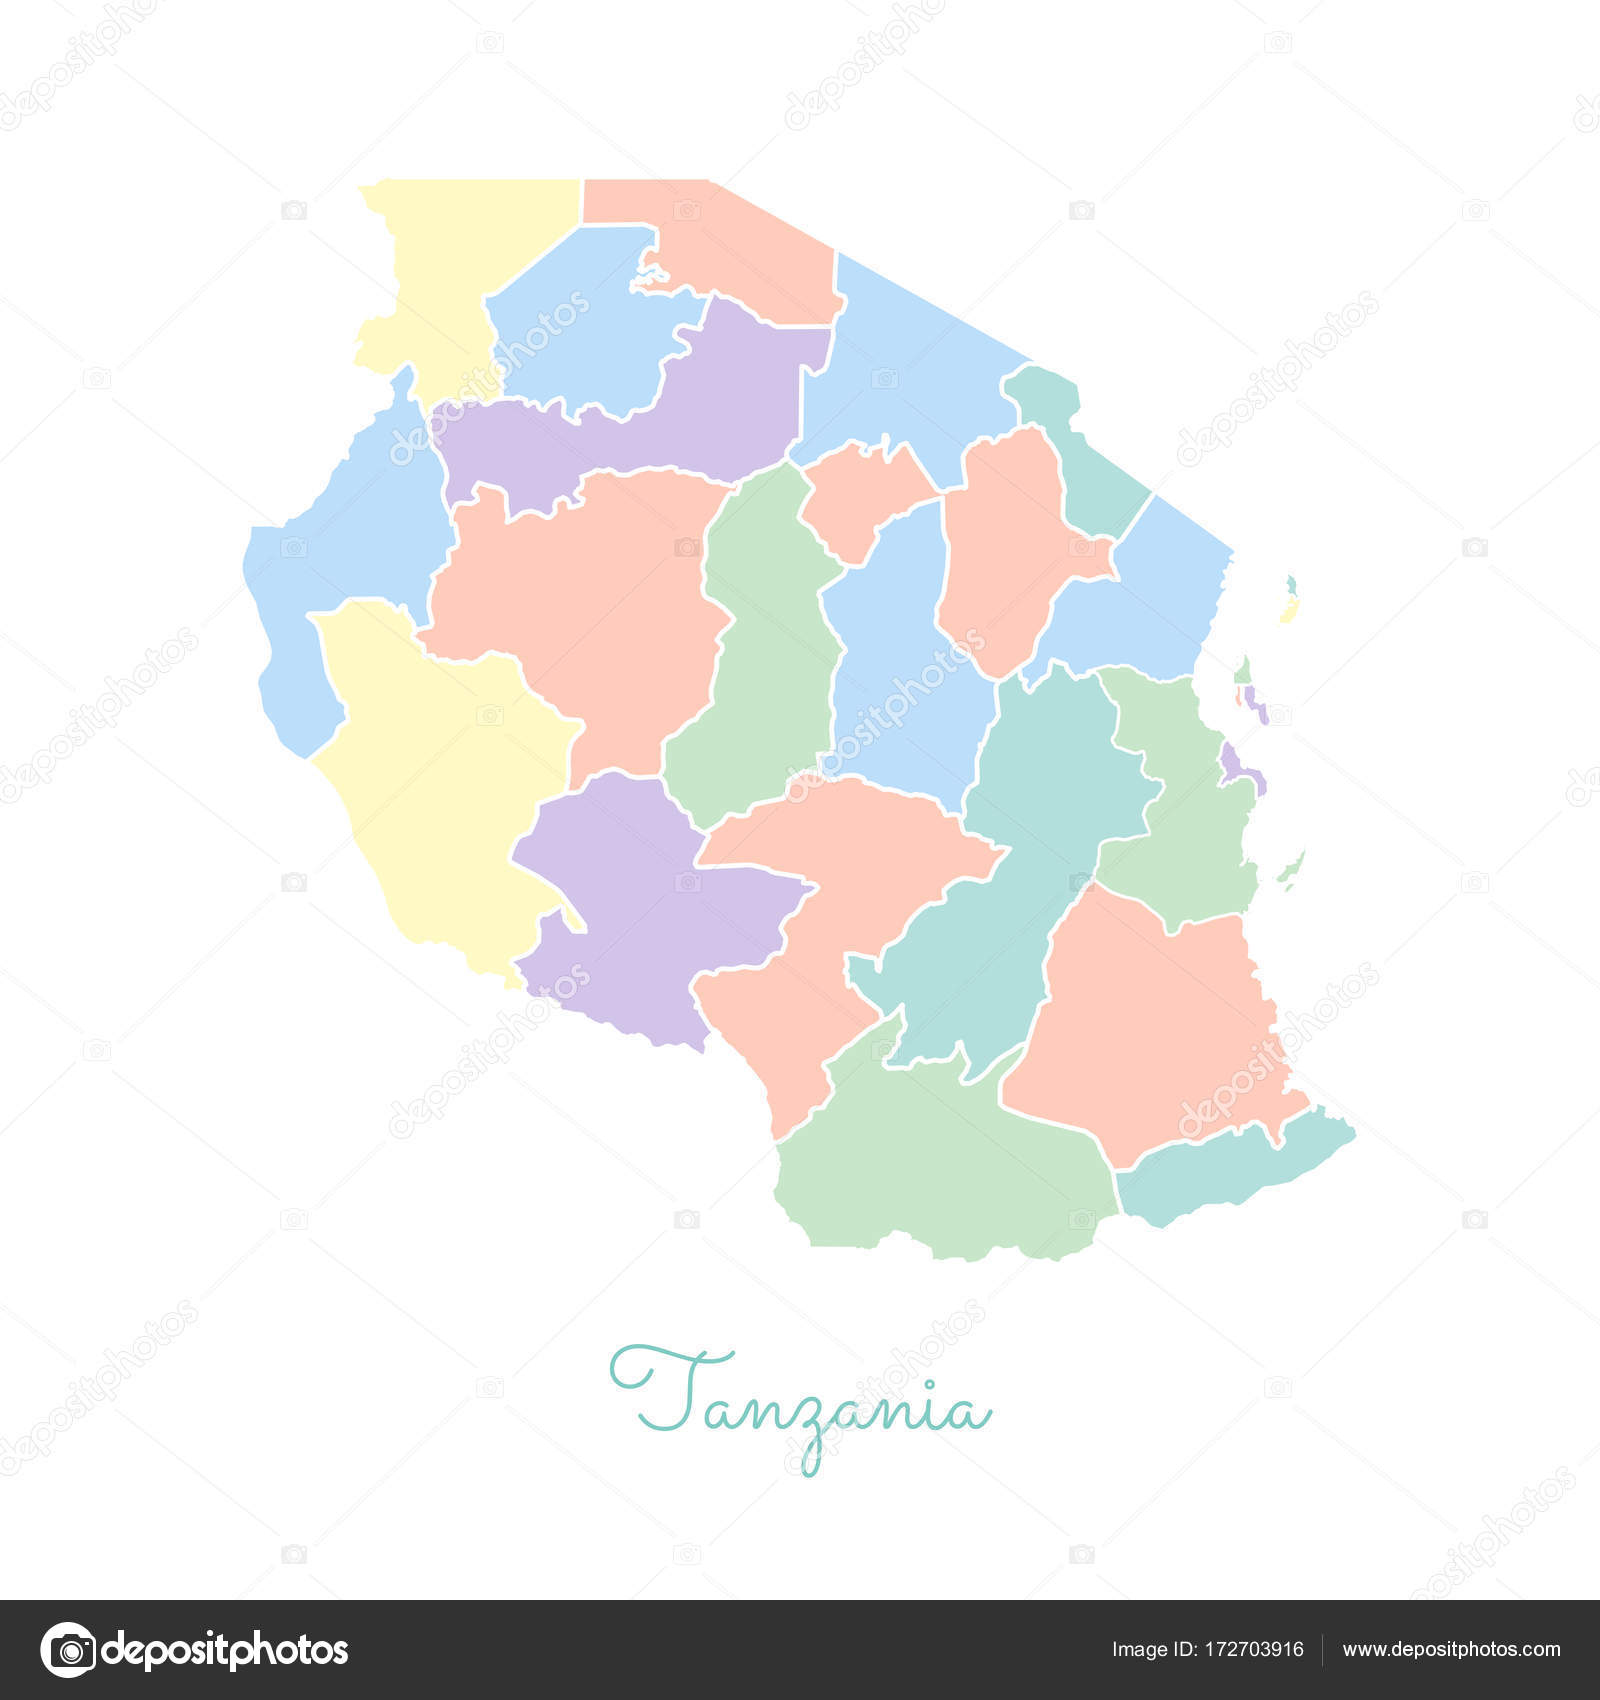 Tanzania region map colorful with white outline Detailed map of